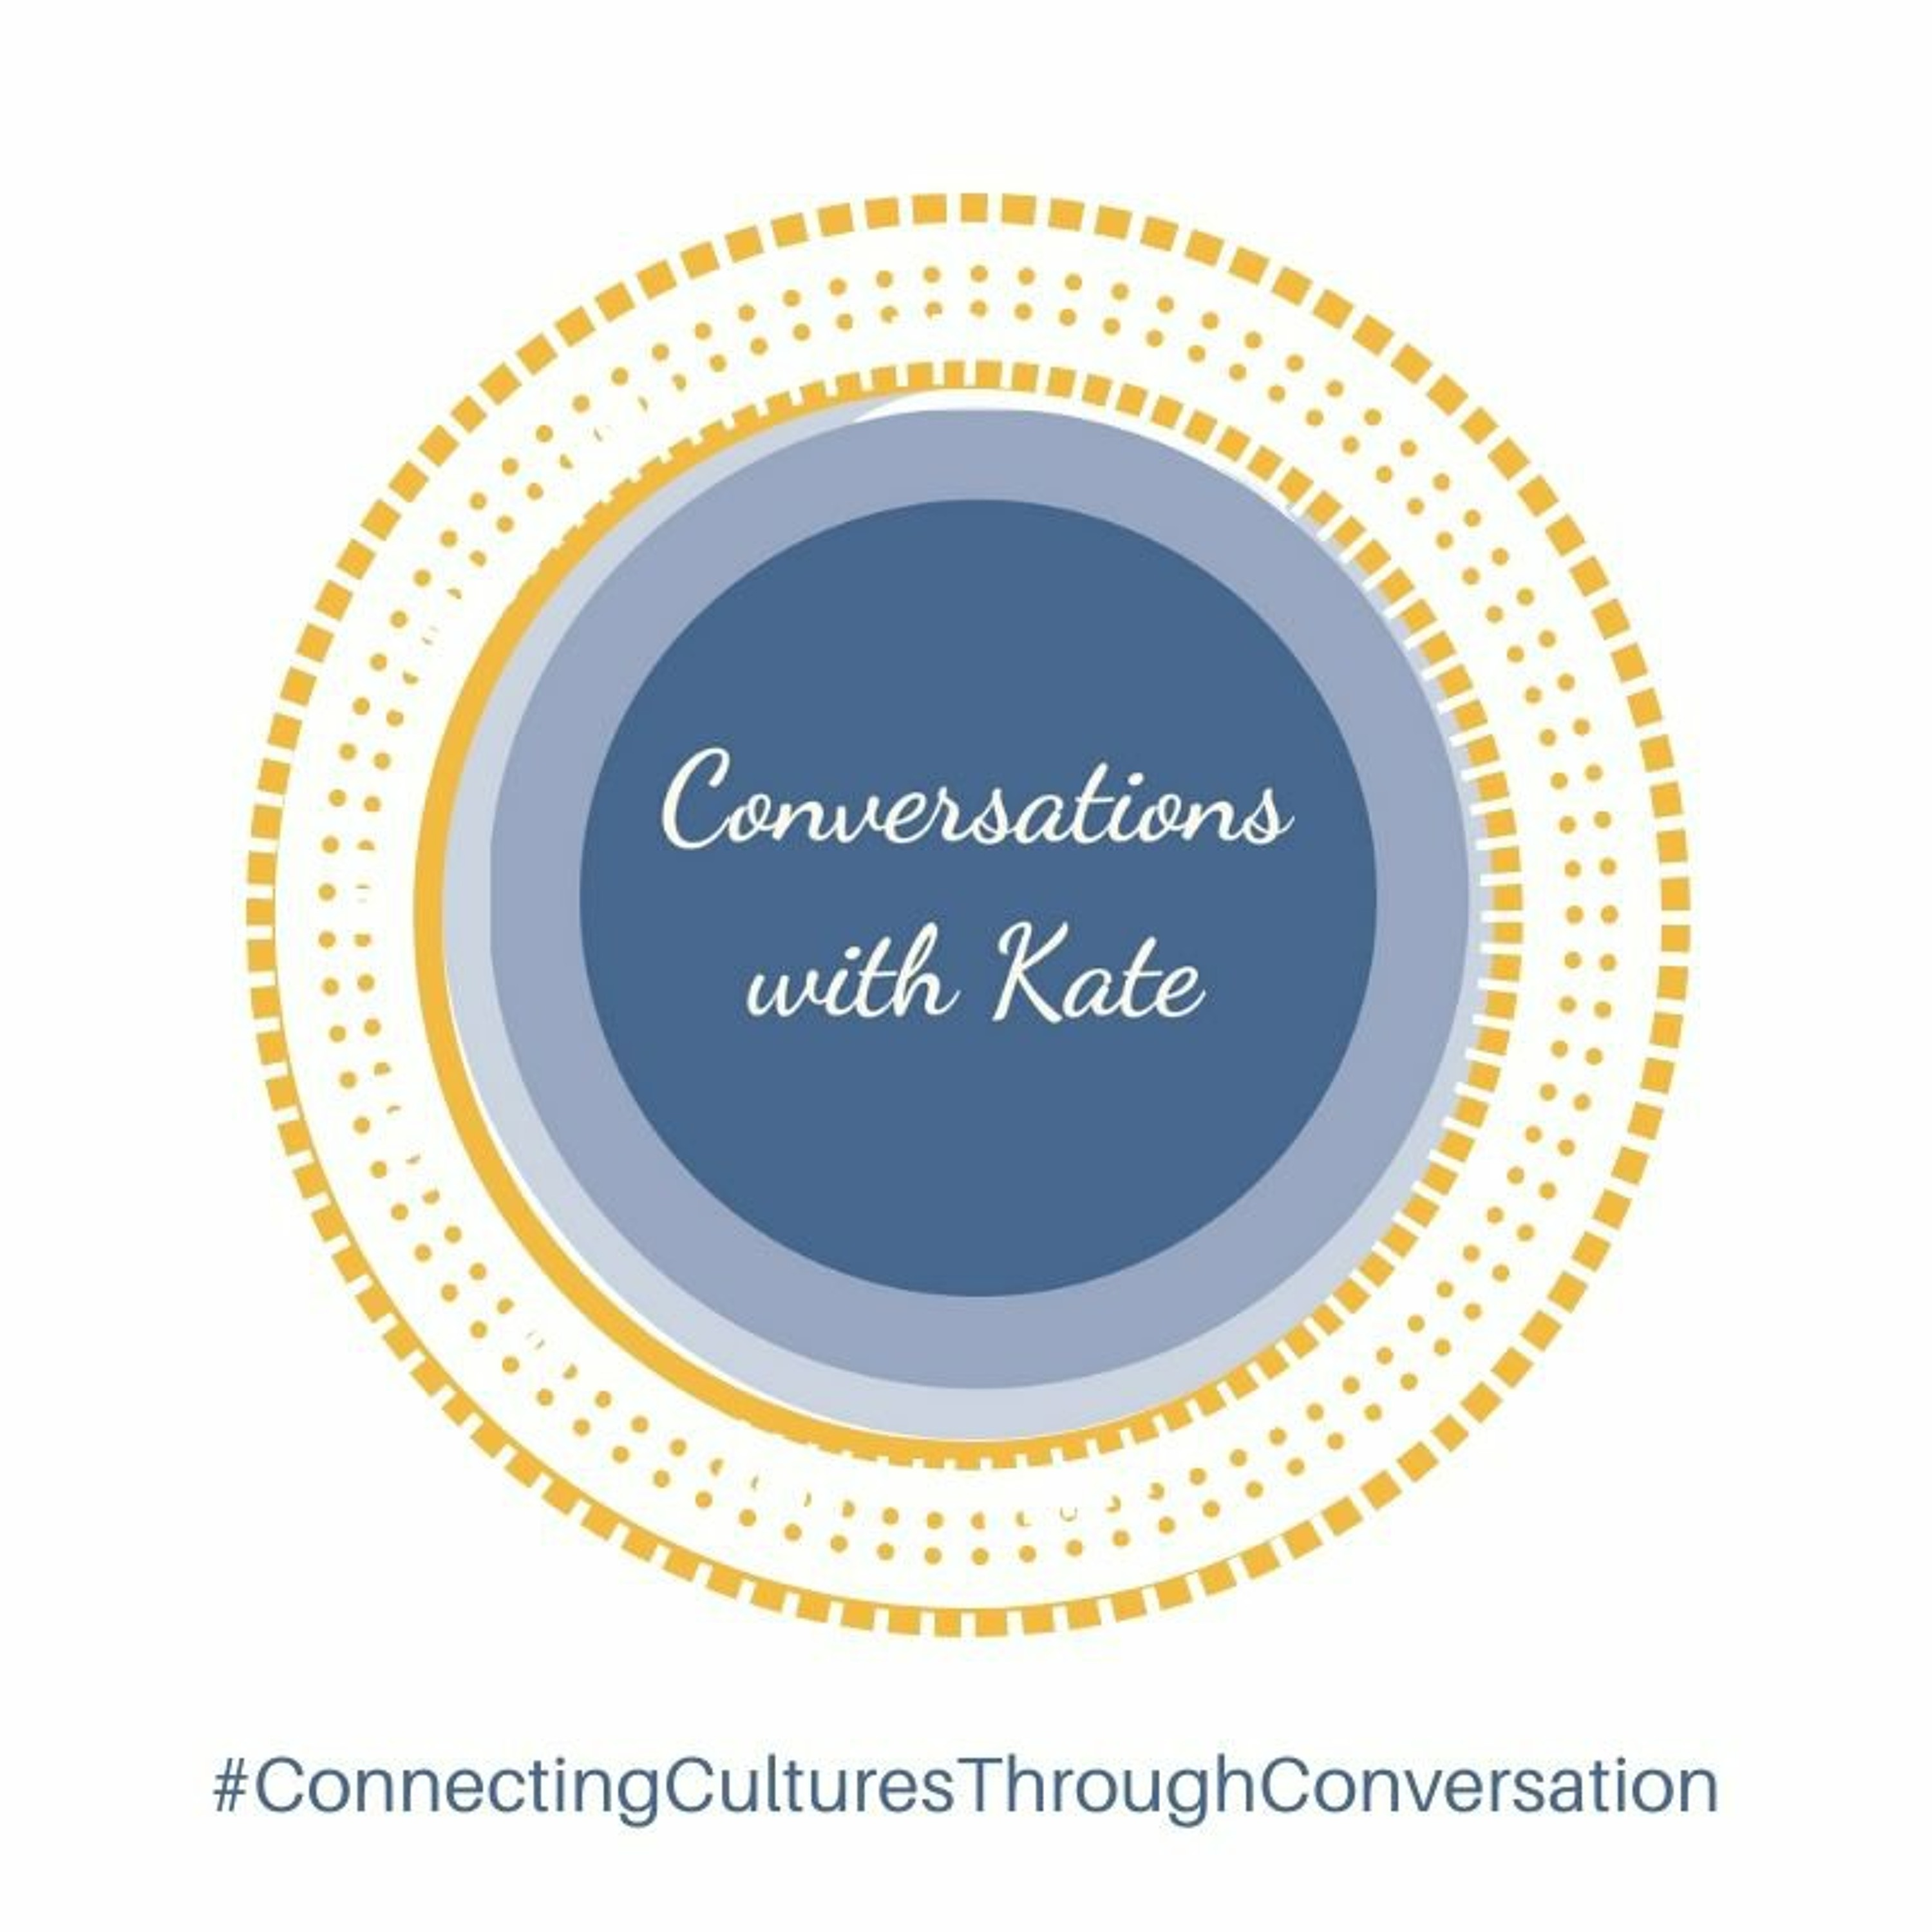 [116] Fun & Games for Language Learning - My conversation with Vickie Kelty